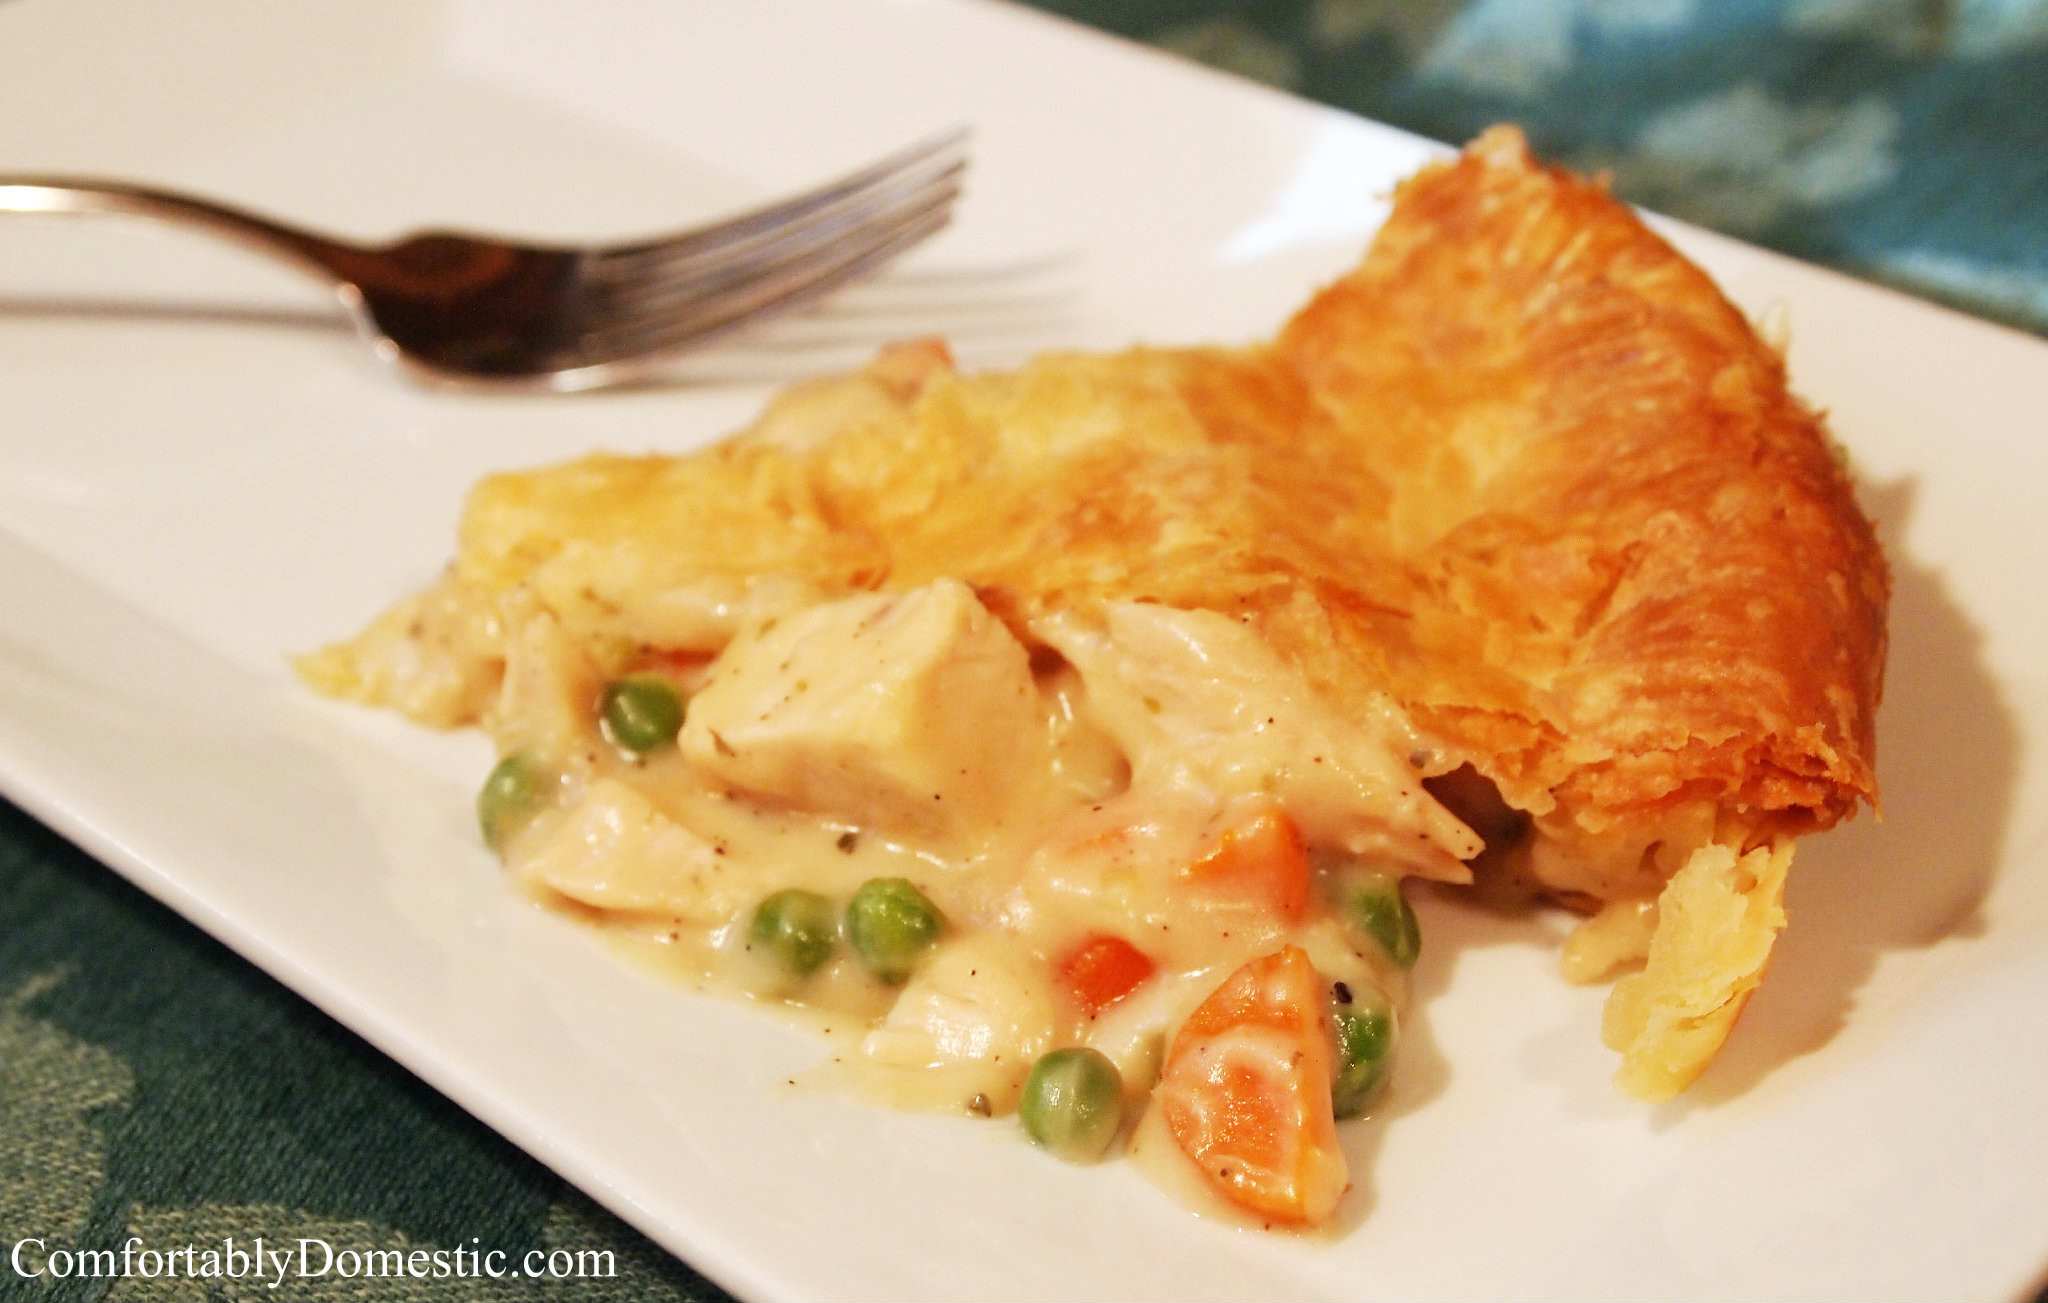 Chicken Pot Pie | ComfortablyDomestic.com